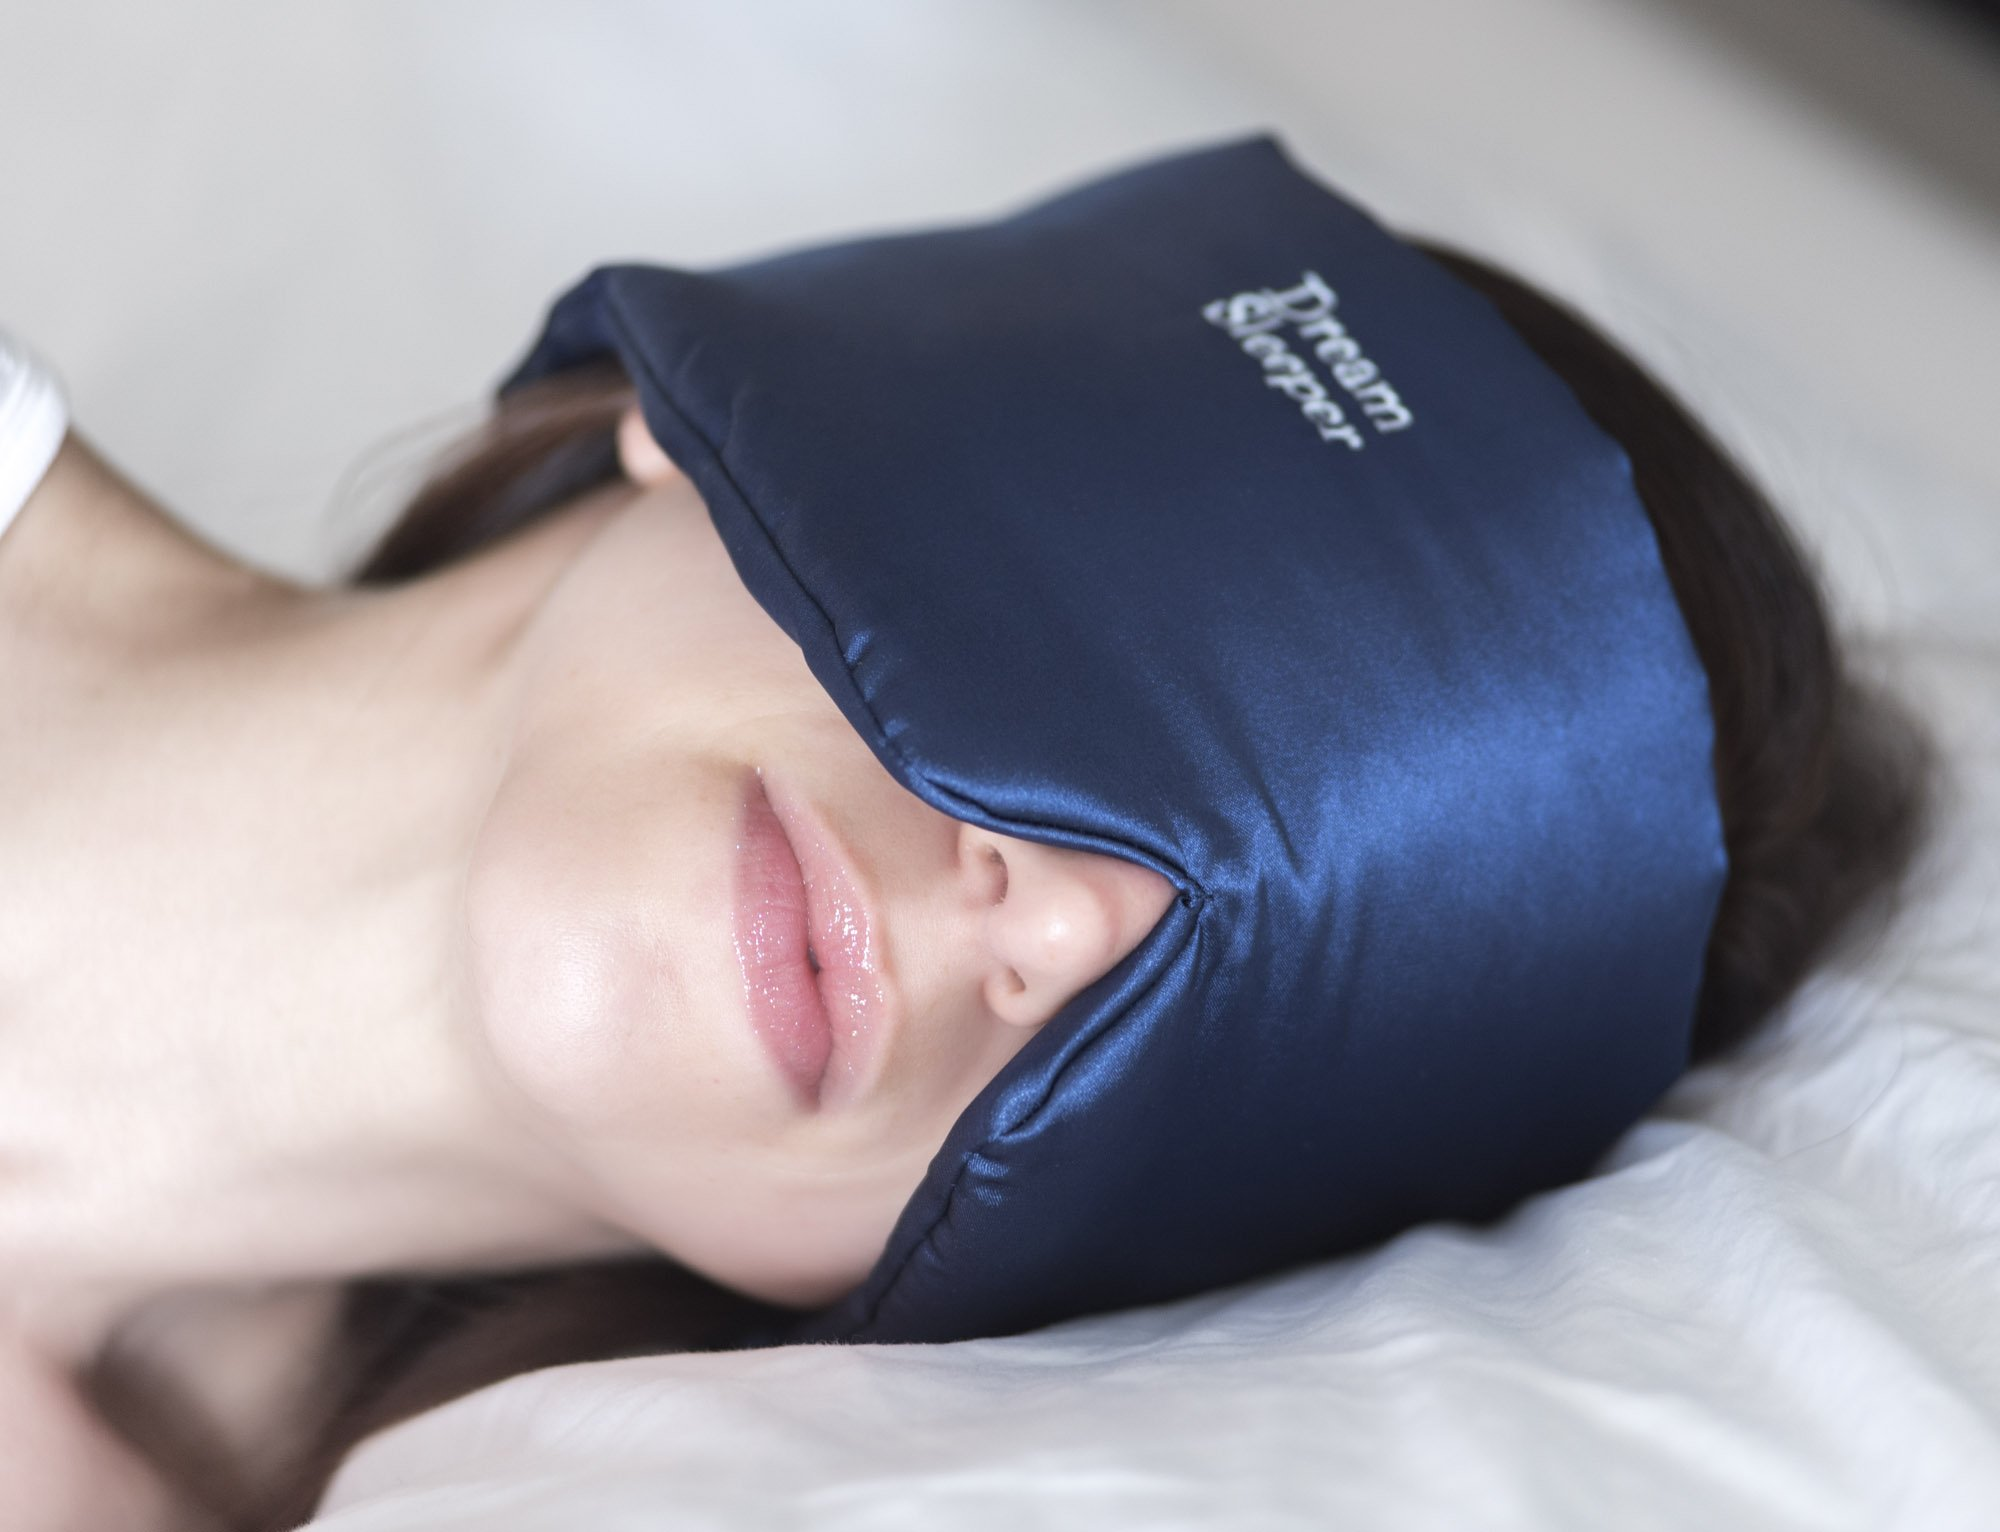 #1 Rated - Dream Sleeper Sleep Mask Blocks Out 100% Of All Light. Master Your Sleep. If You Lose It We Will Replace It for free.